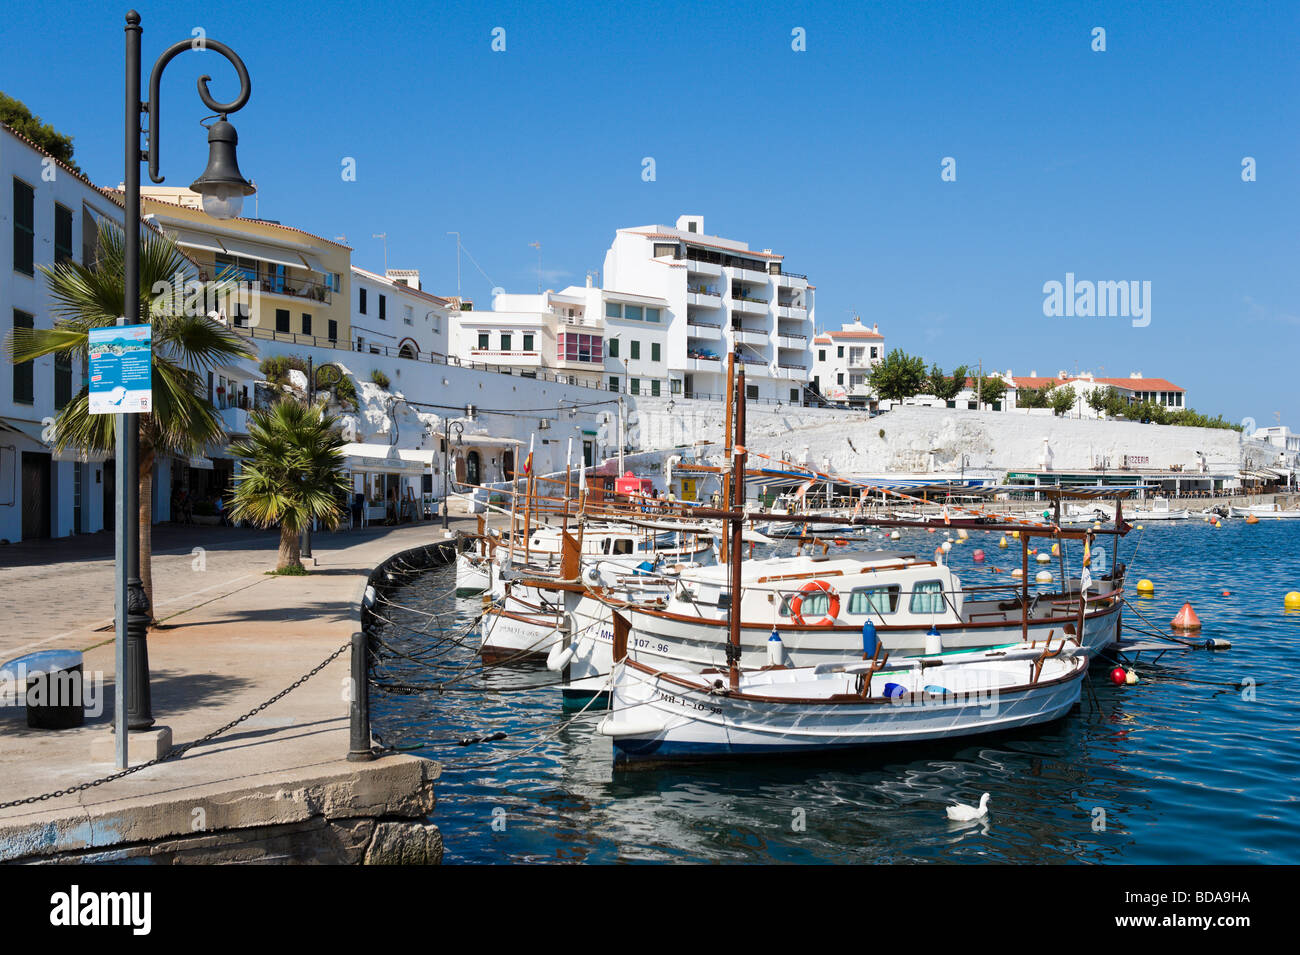 Traditional fishing boats in Moll de Cales Fonts harbour, Es Castell, near Mahon, Menorca, Balearic Islands, Spain - Stock Image